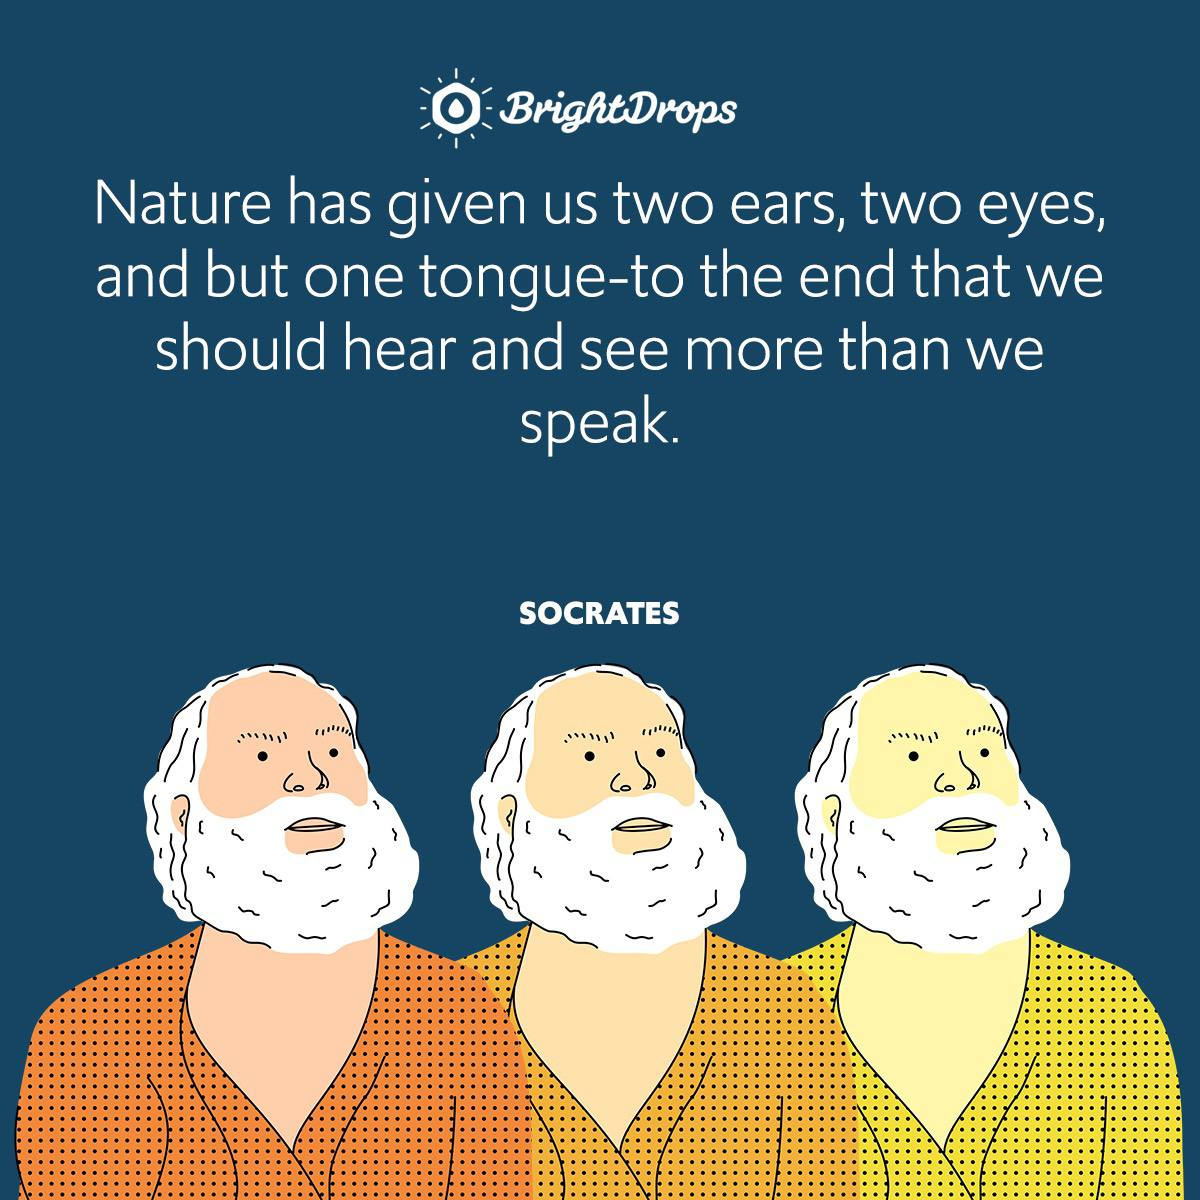 Nature has given us two ears, two eyes, and but one tongue-to the end that we should hear and see more than we speak.